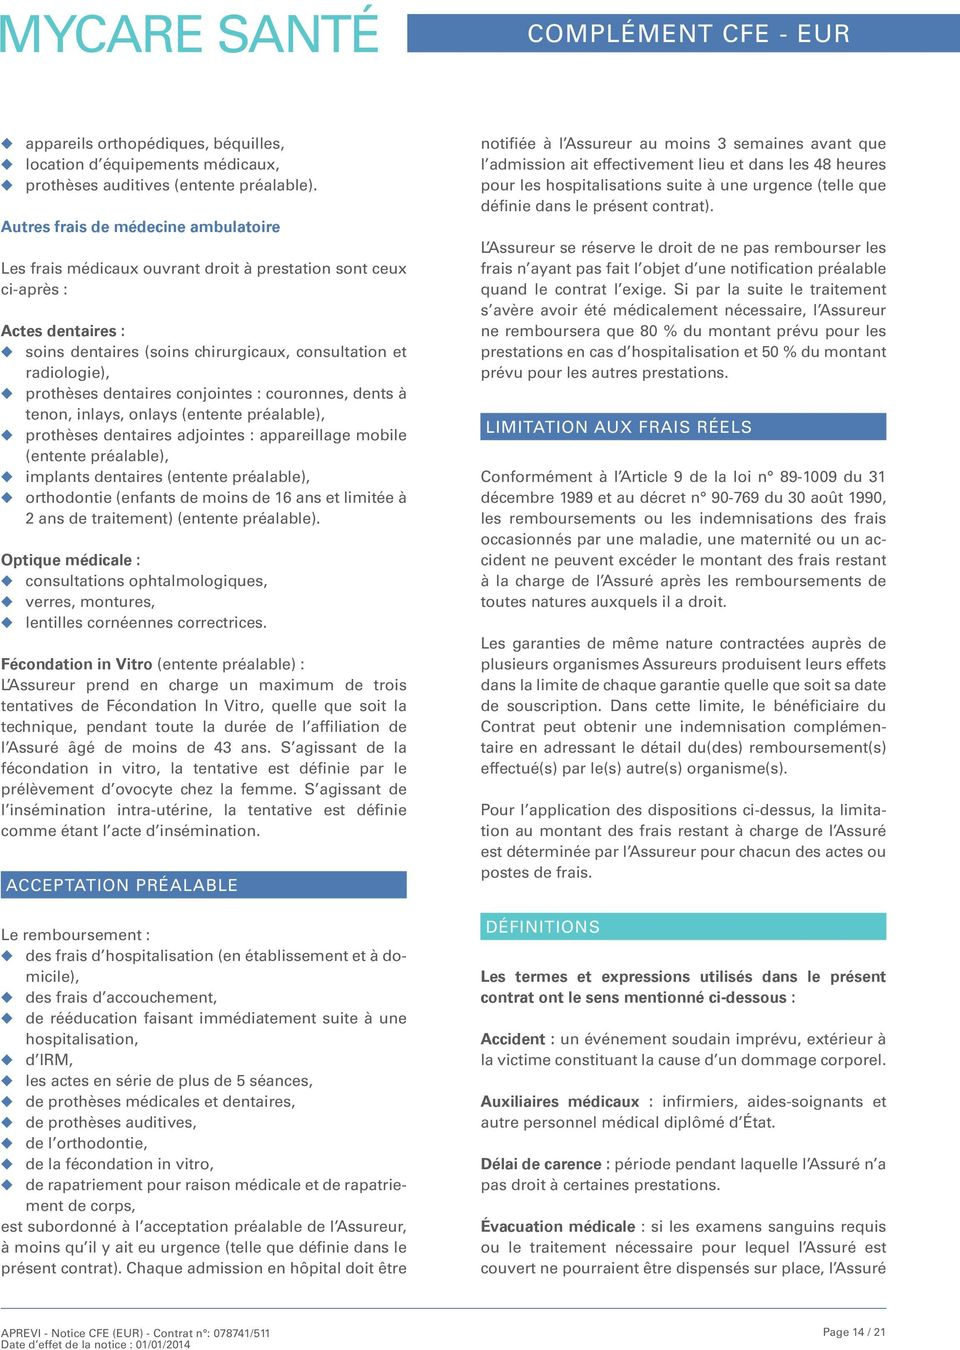 dentaires conjointes : couronnes, dents à tenon, inlays, onlays (entente préalable), prothèses dentaires adjointes : appareillage mobile (entente préalable), implants dentaires (entente préalable),